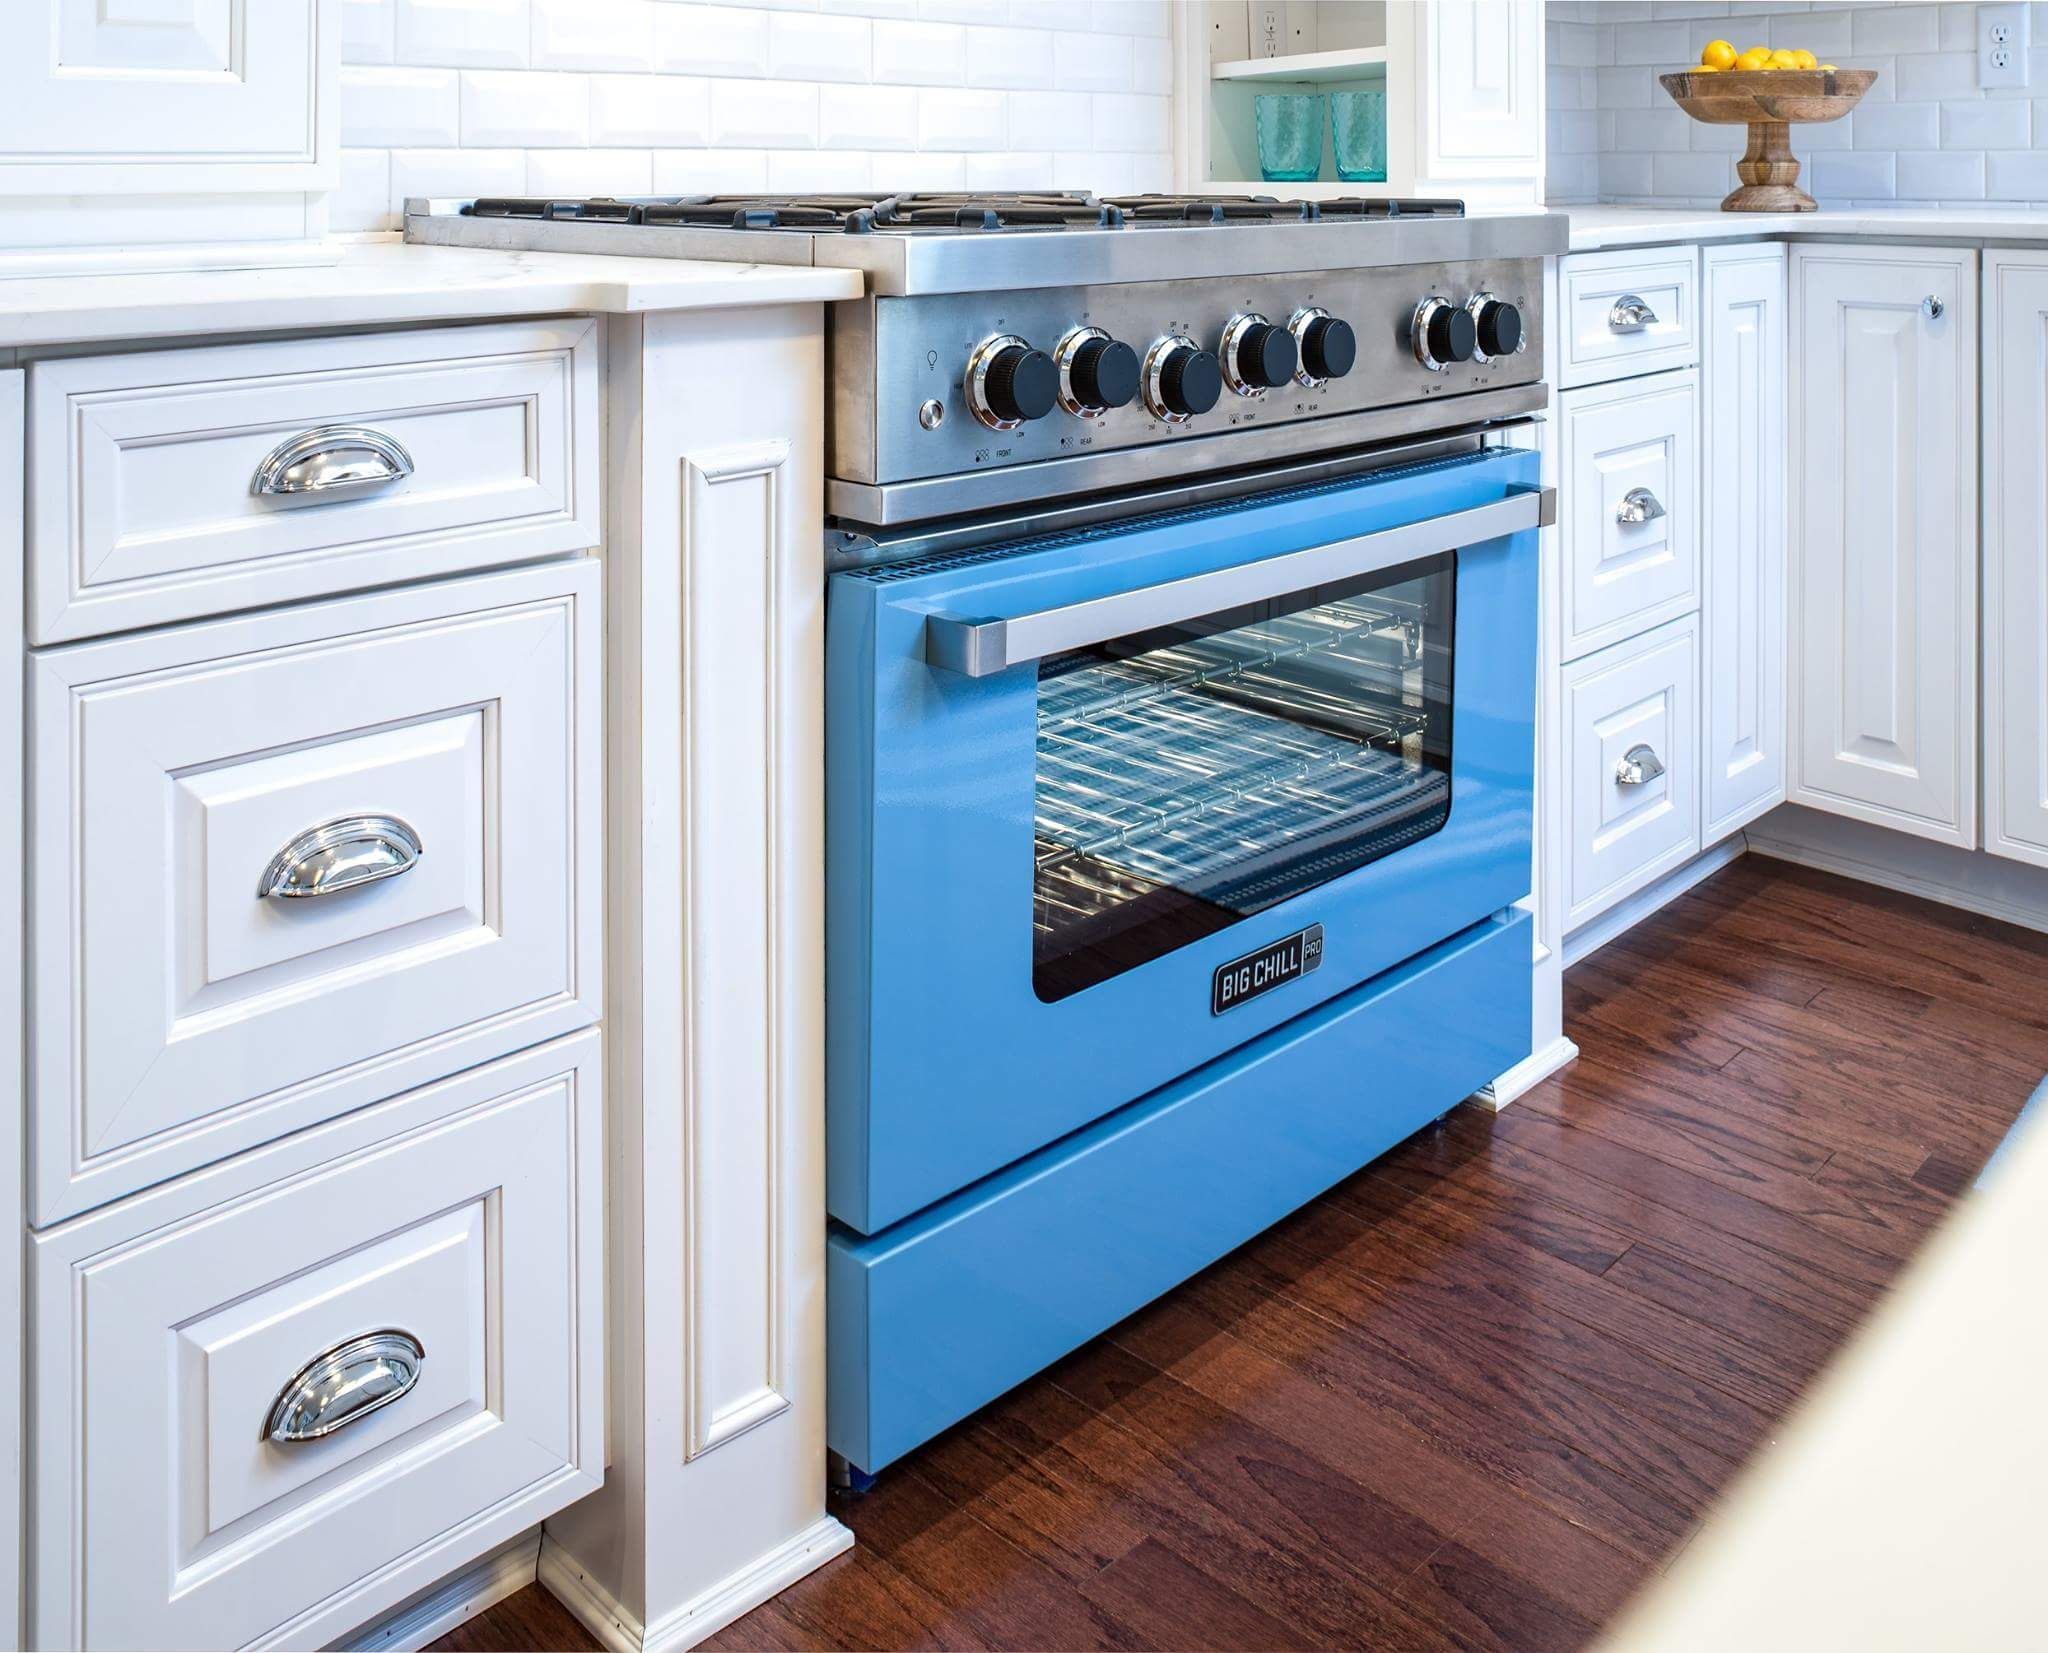 Big Chill Appliances   home   Pinterest   Big chill, Kitchens and House